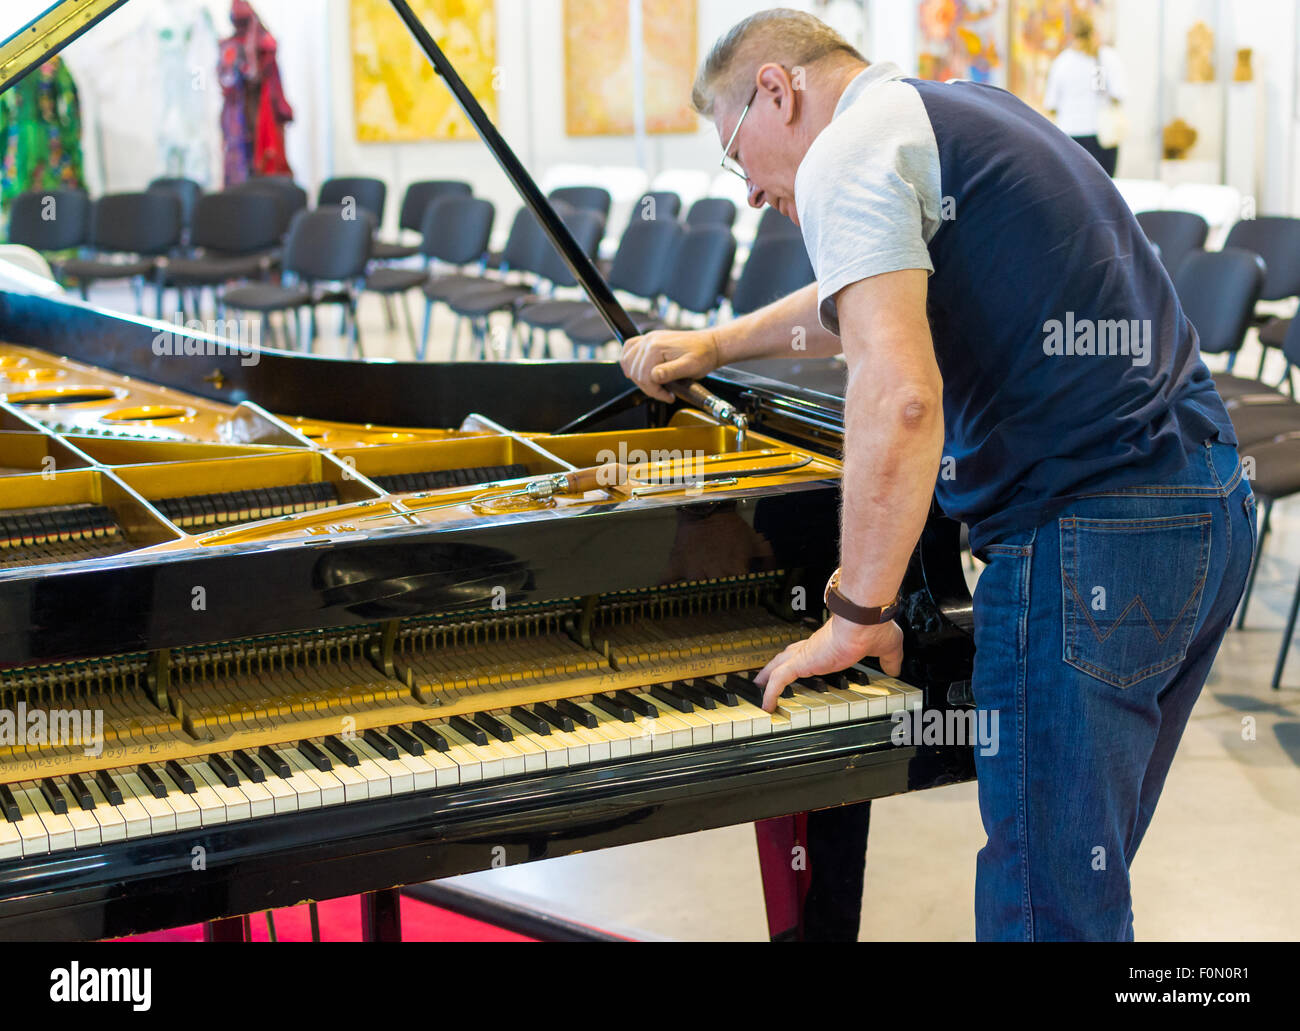 Professional piano tuner works on a grand piano before a musical performance - Stock Image